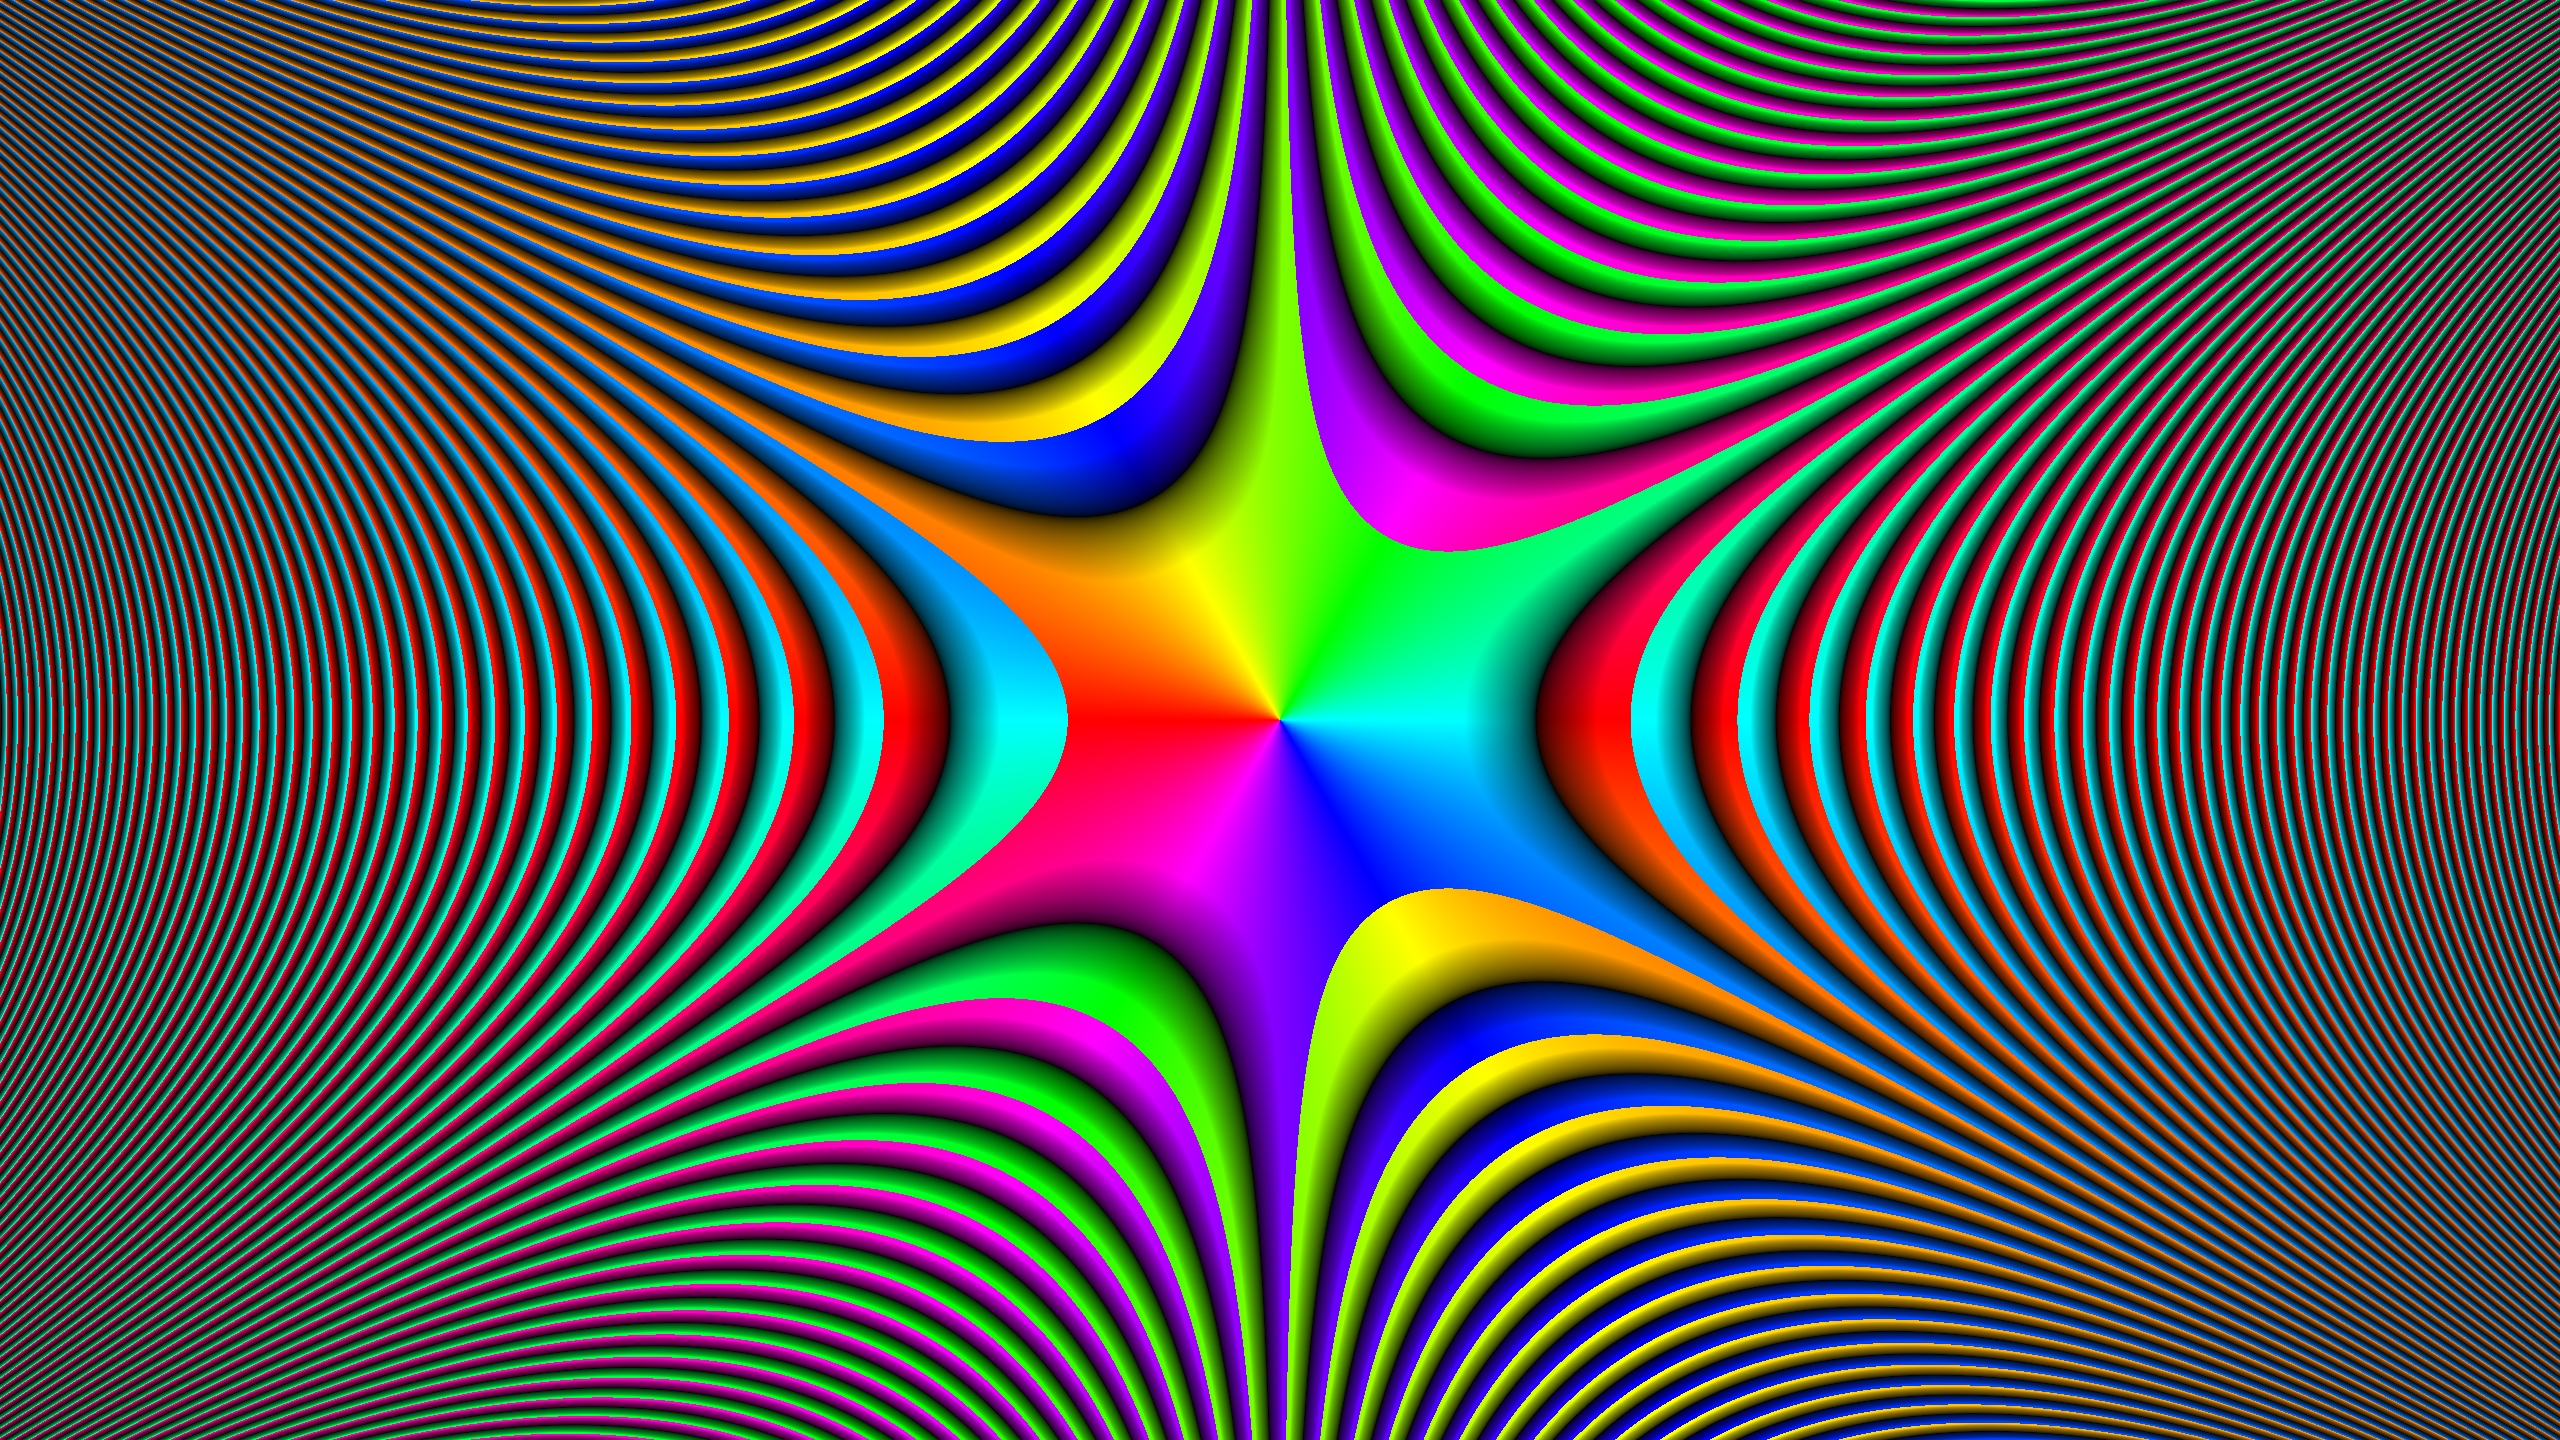 Illusion Hd Wallpaper Background Image 2560x1440 Id